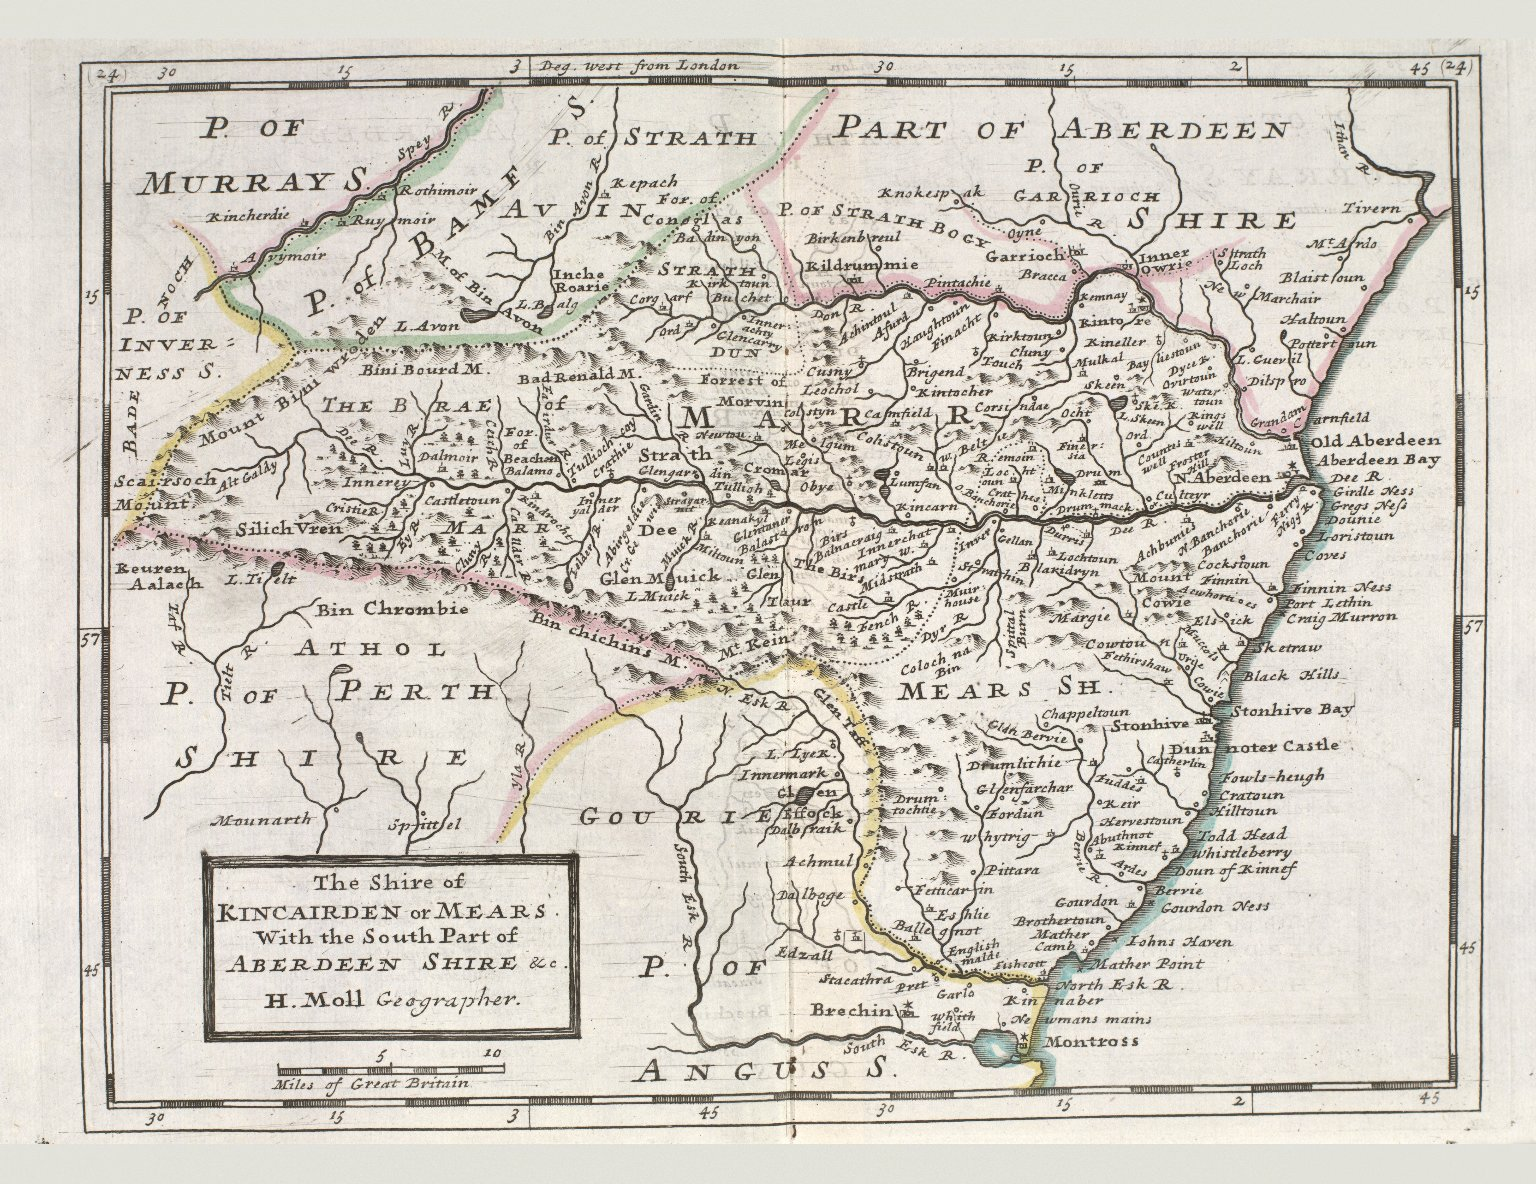 The Shire of Kincairden or Mears. With the South Part of Aberdeen Shire &c. [1 of 1]